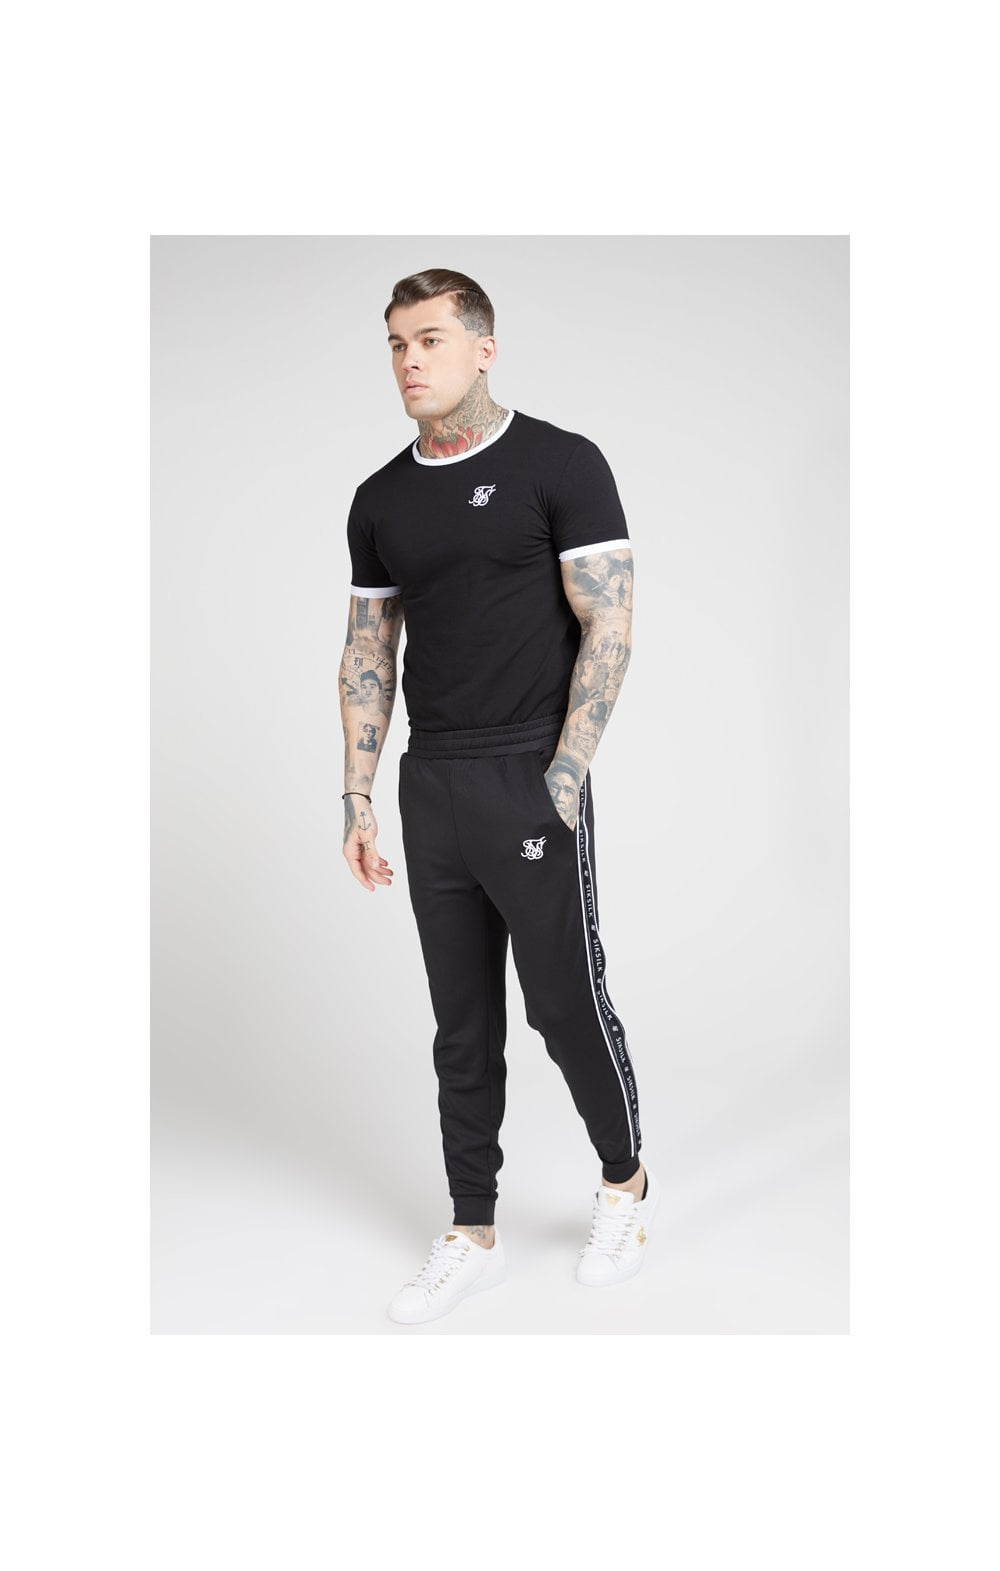 SikSilk S/S Inset Straight Hem Ringer Gym Tee – Black & White (3)